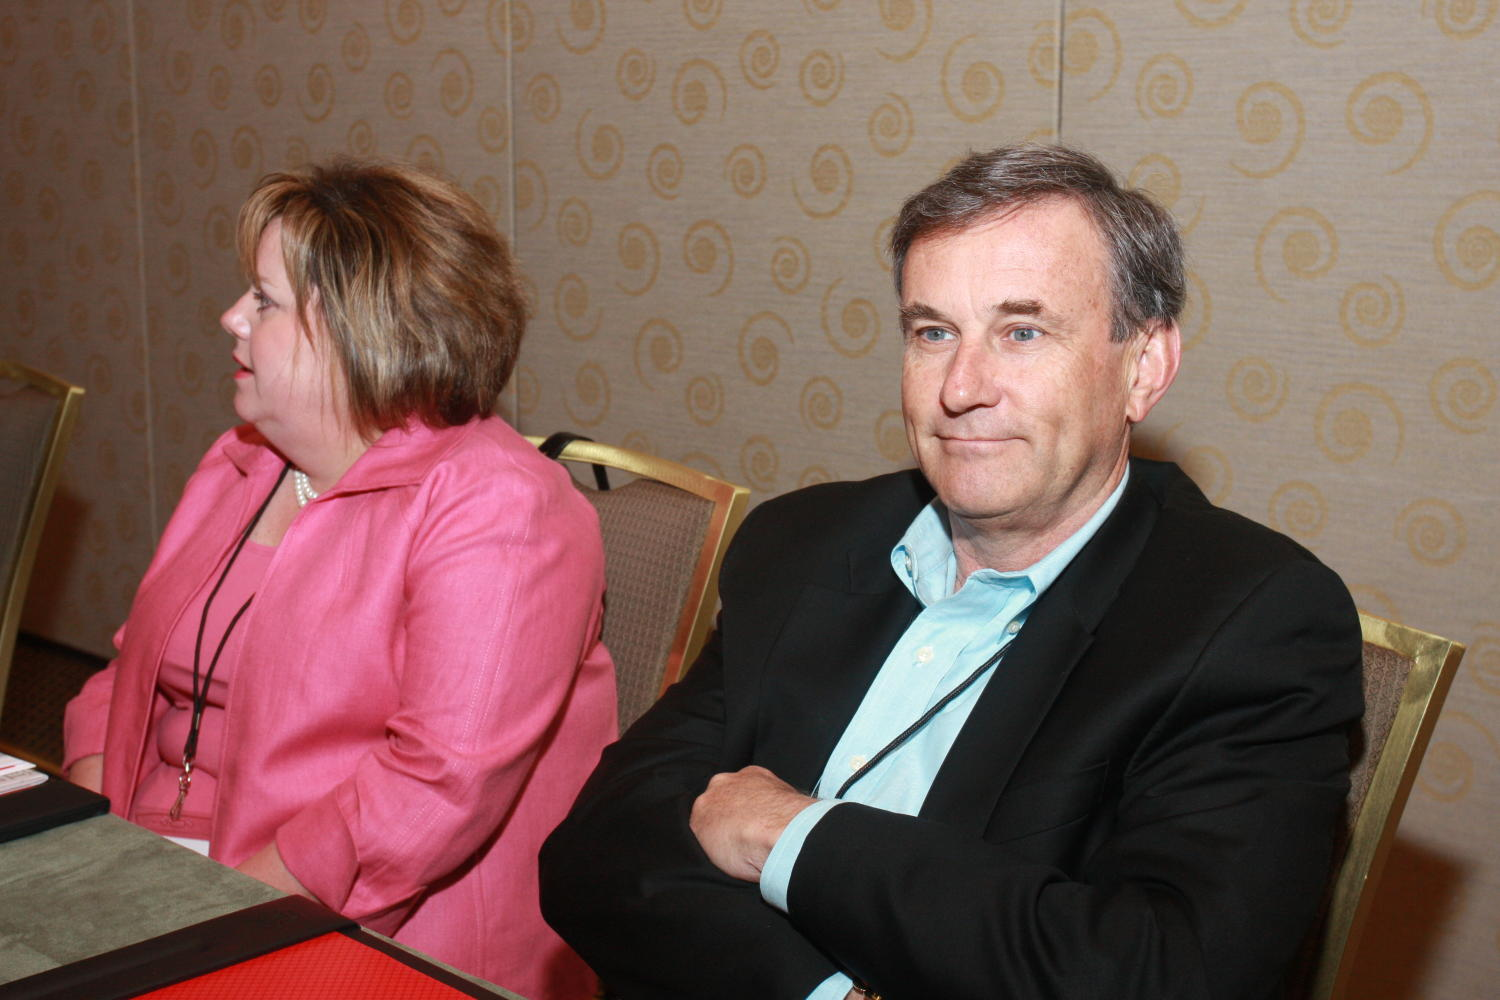 [Guests attending the 2010 TDNA conference], Photograph of unidentified guests seated at tables and relaxing as their picture is taken during the 2010 Texas Daily Newspaper Association annual meeting held in Houston, Texas.,